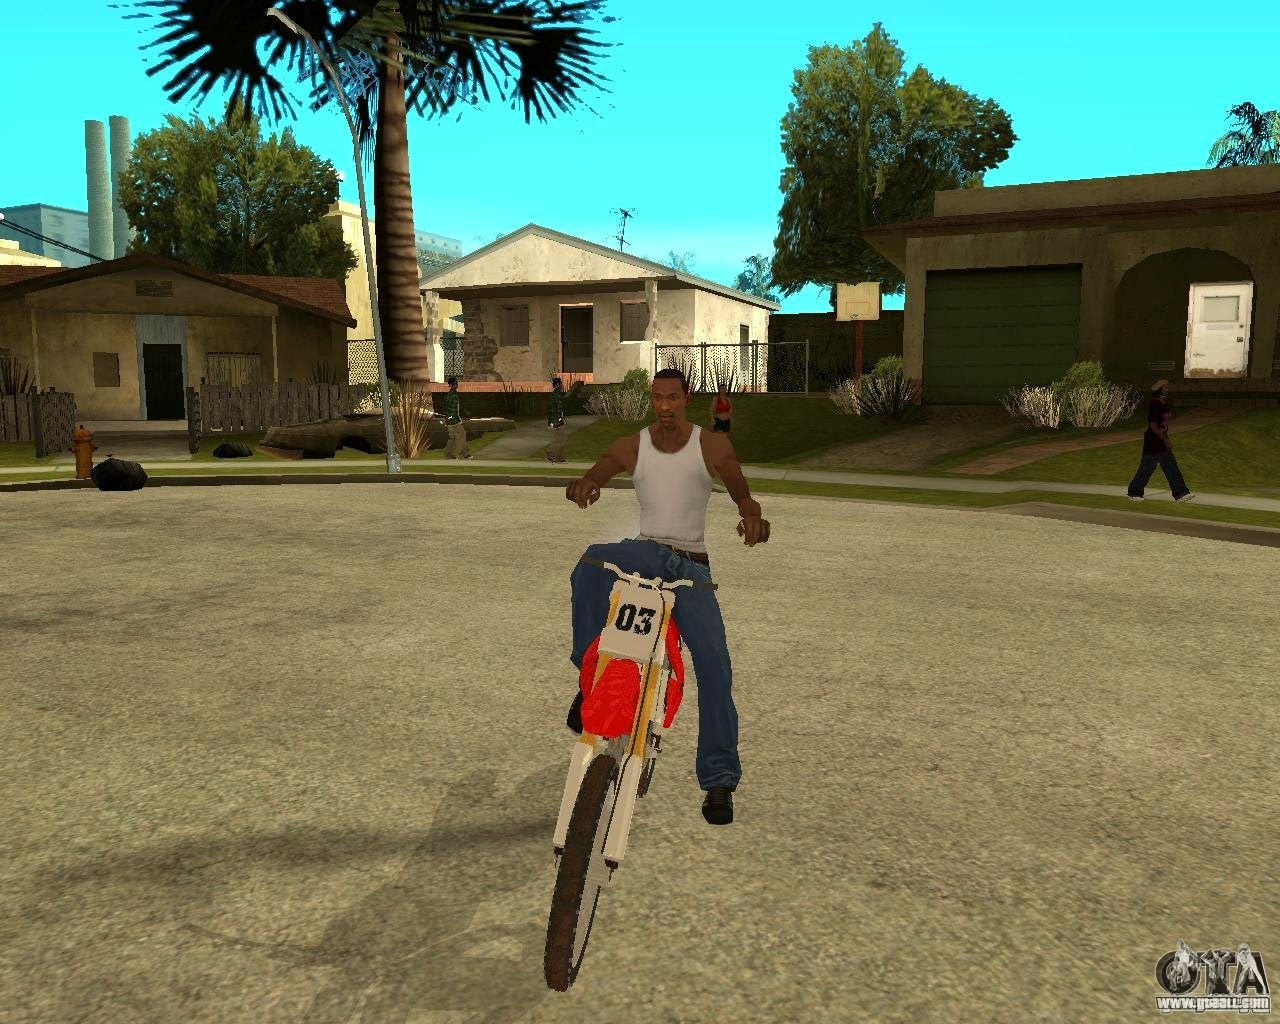 Gta san andreas + extreme edition 2011 | games best zone.